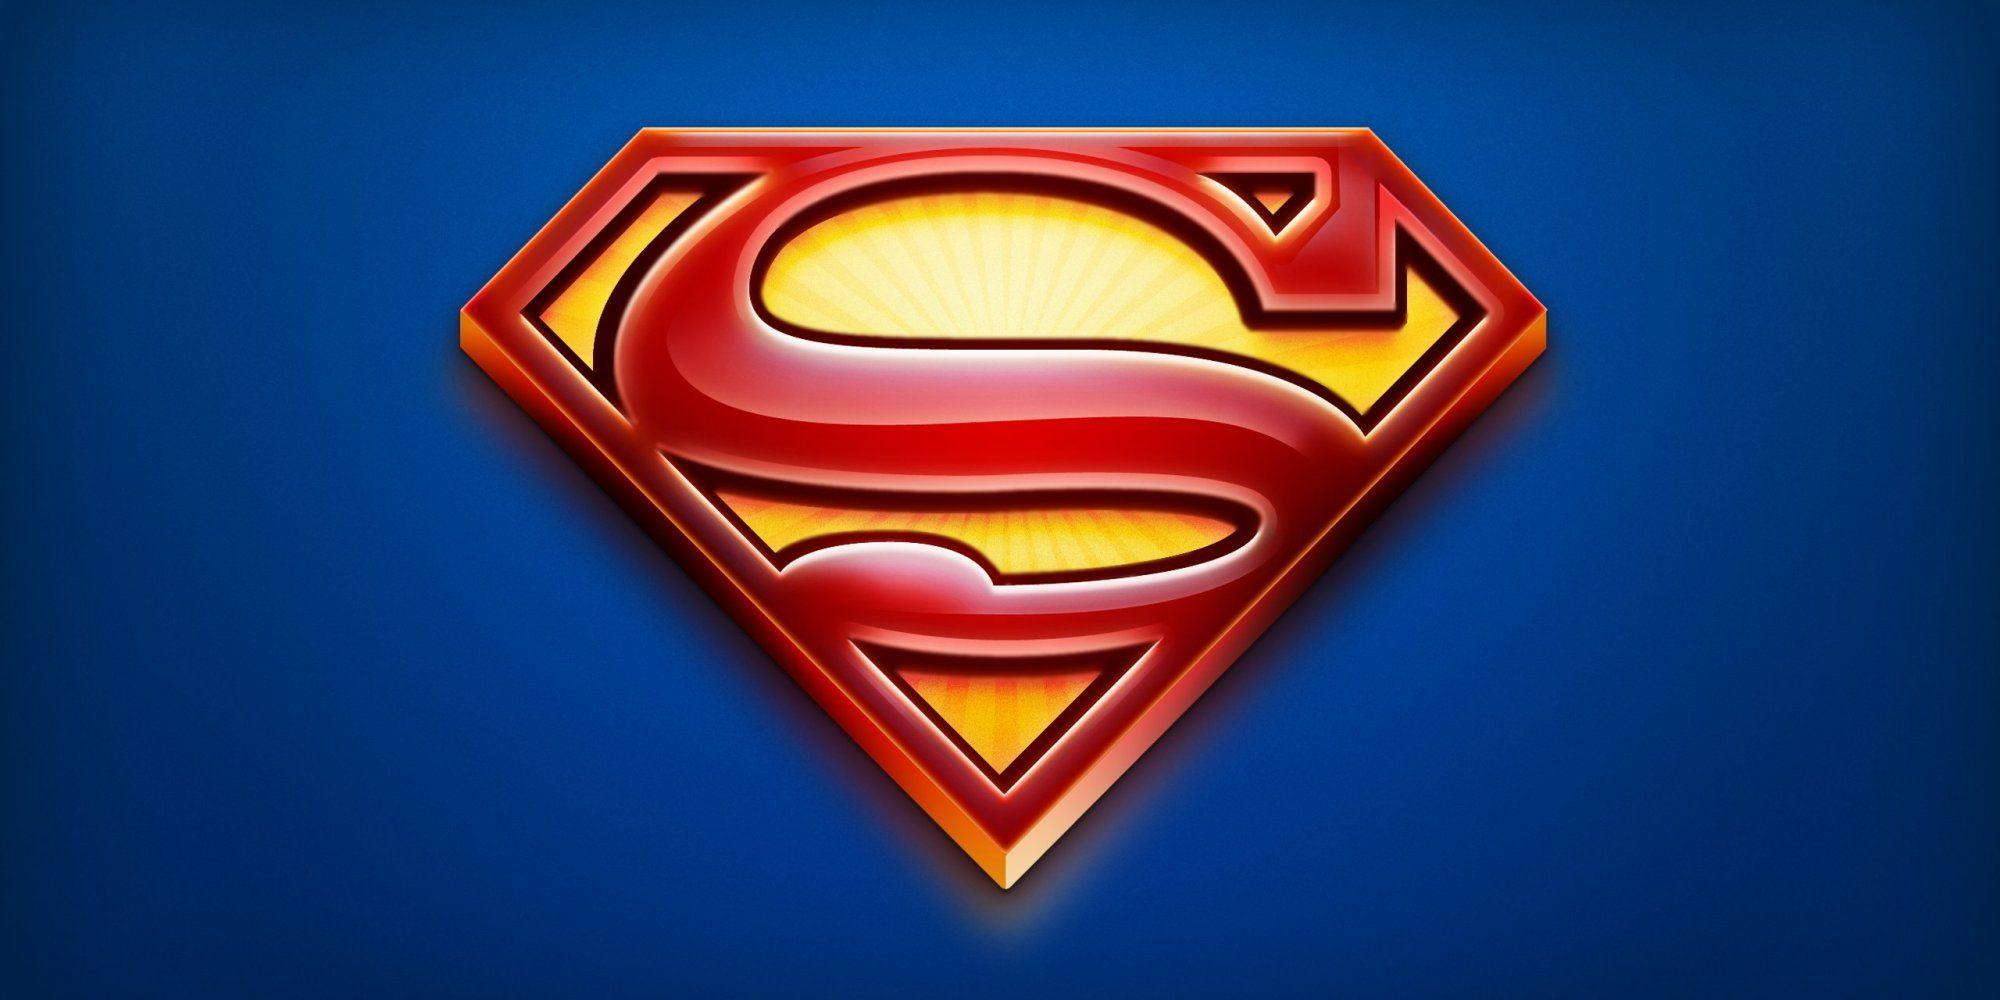 Wallpapers Superman Logo Wallpaper Cave